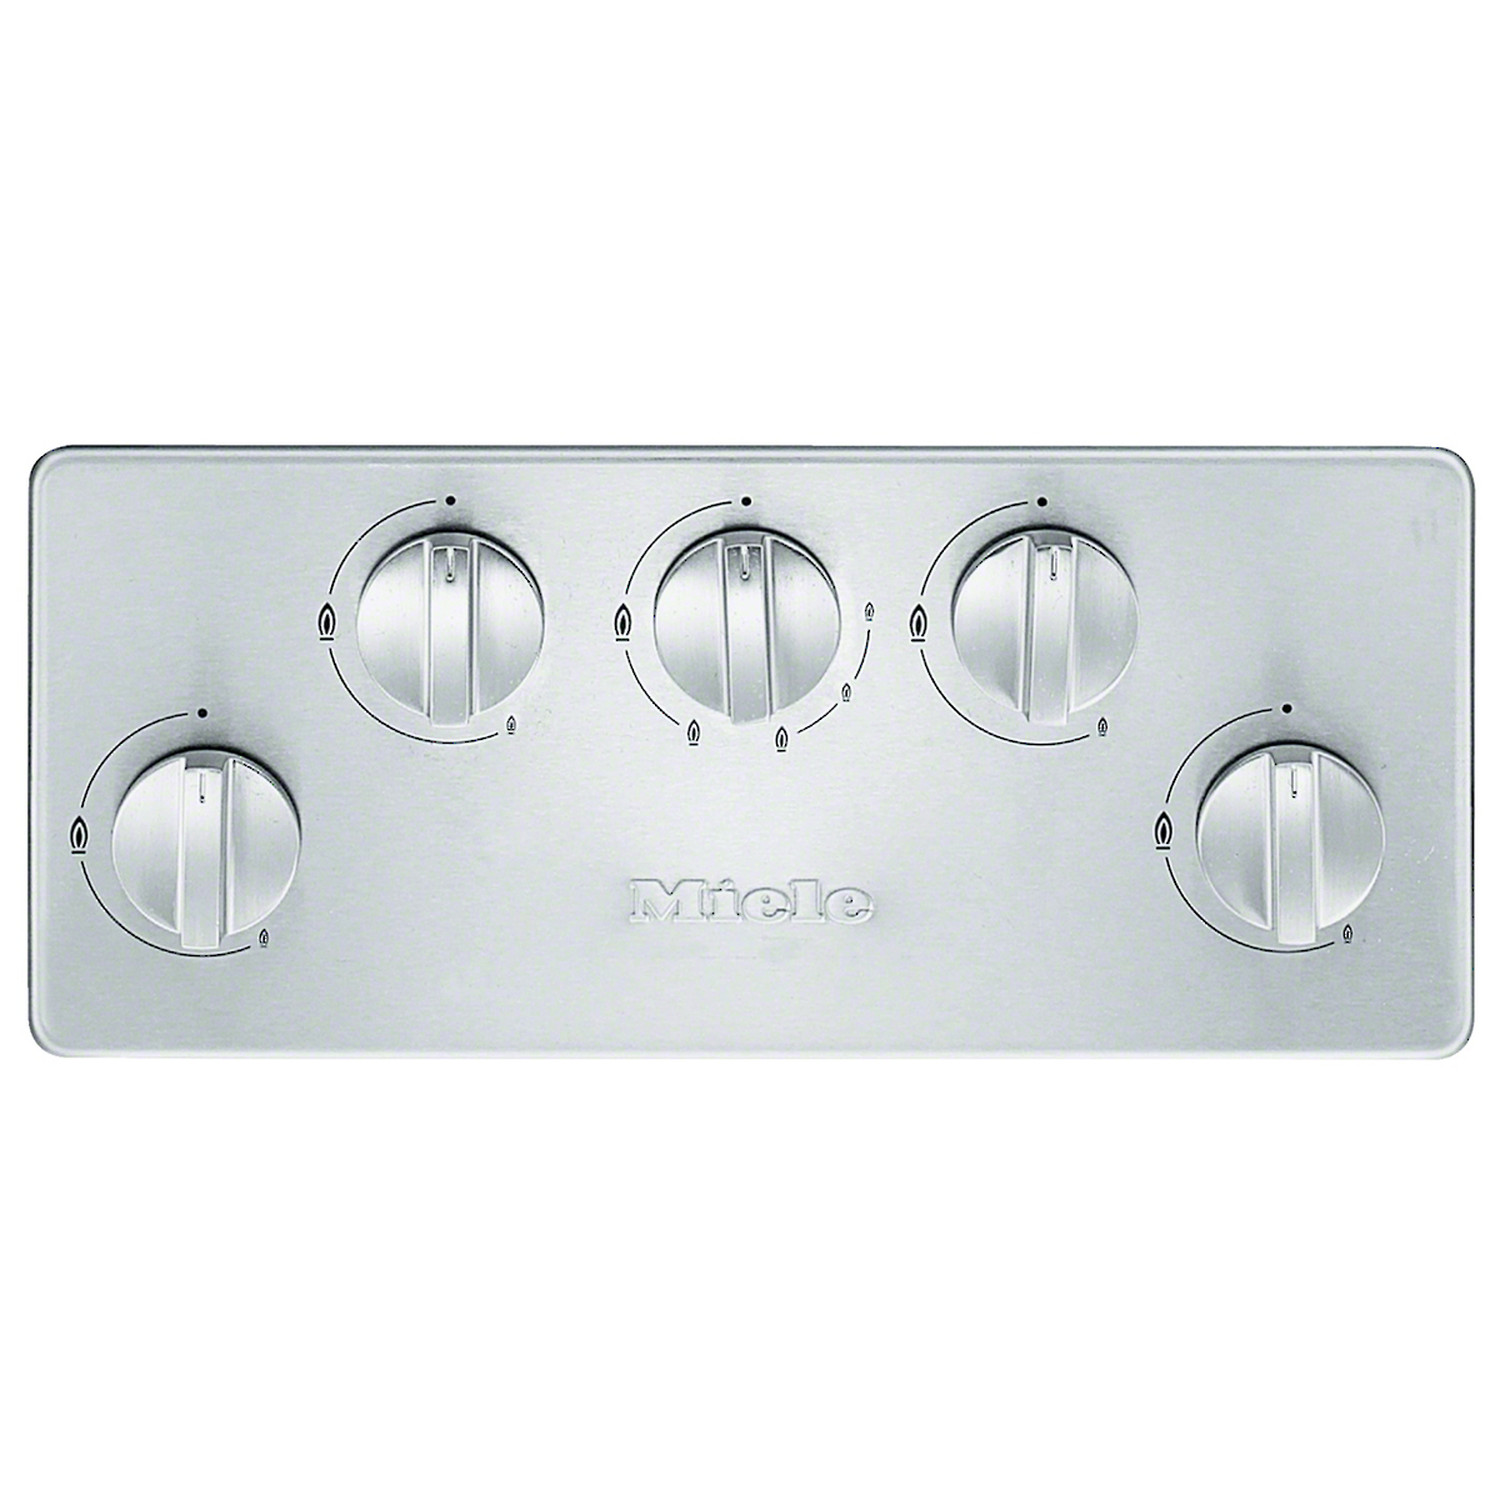 Miele KM 2357 G Stainless steel gas cooktop